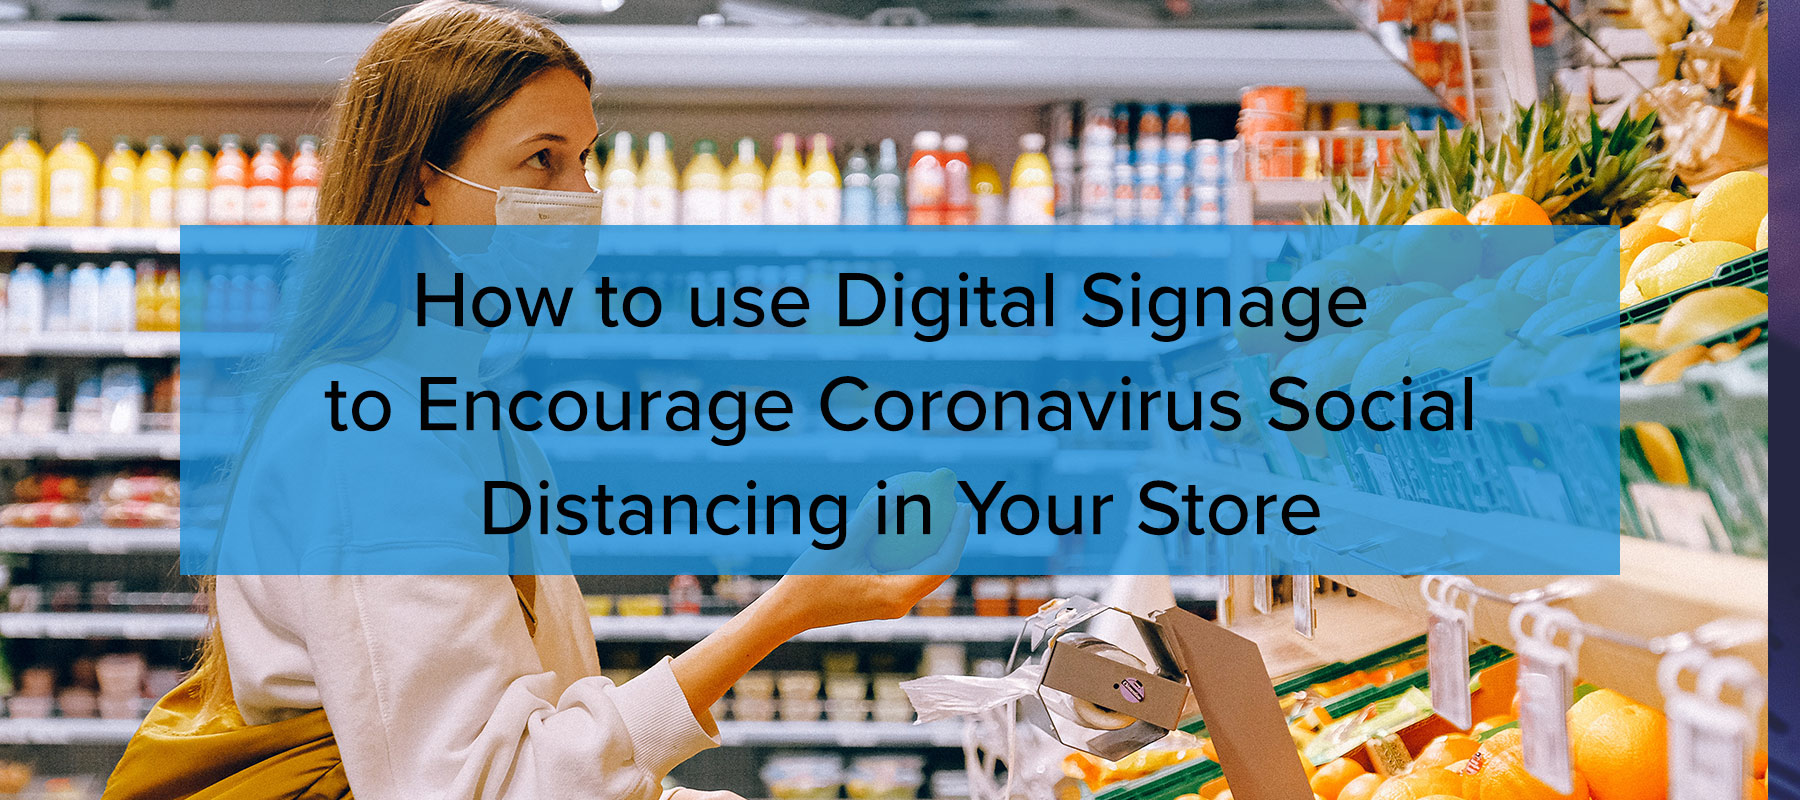 social distancing in your store